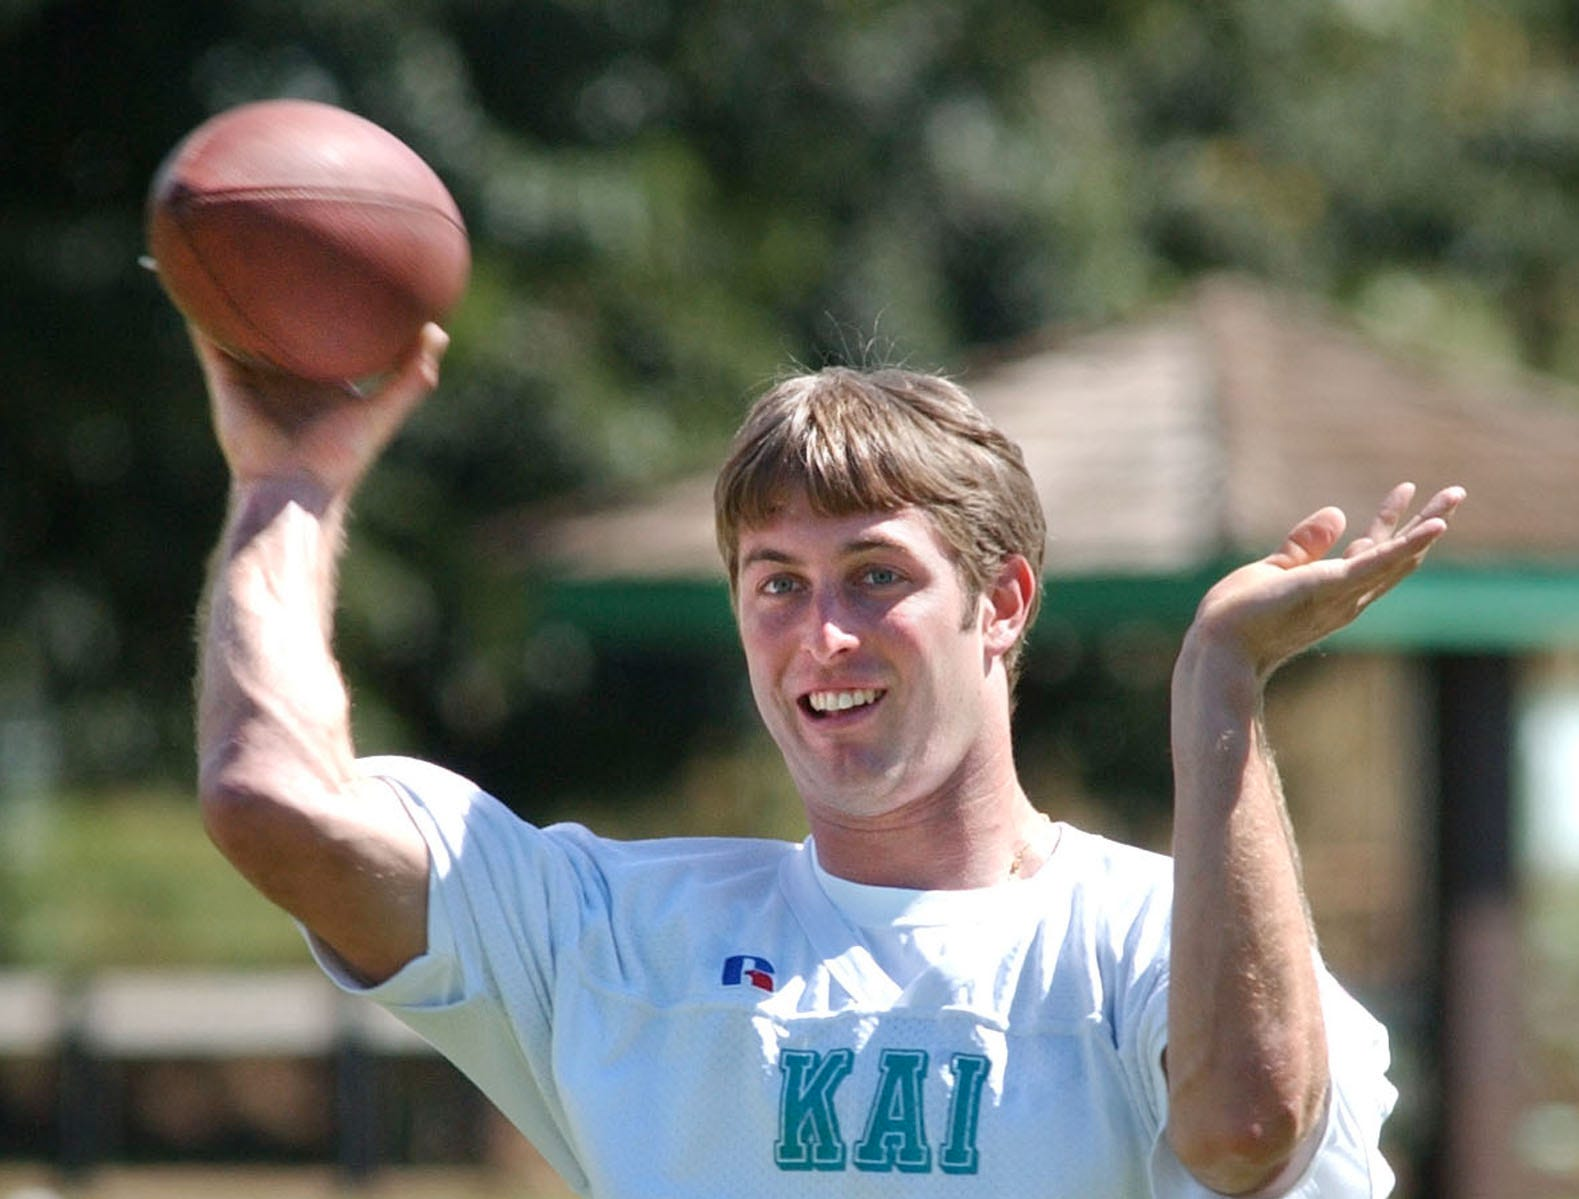 Texas Tech quarterback Kliff Kingsbury fires a pass during Hula Bowl practice Friday, Jan. 31, 2003, at Lahaina Recreation Center Field in Lahaina, Hawaii. (AP Photo/Matthew Thayer)